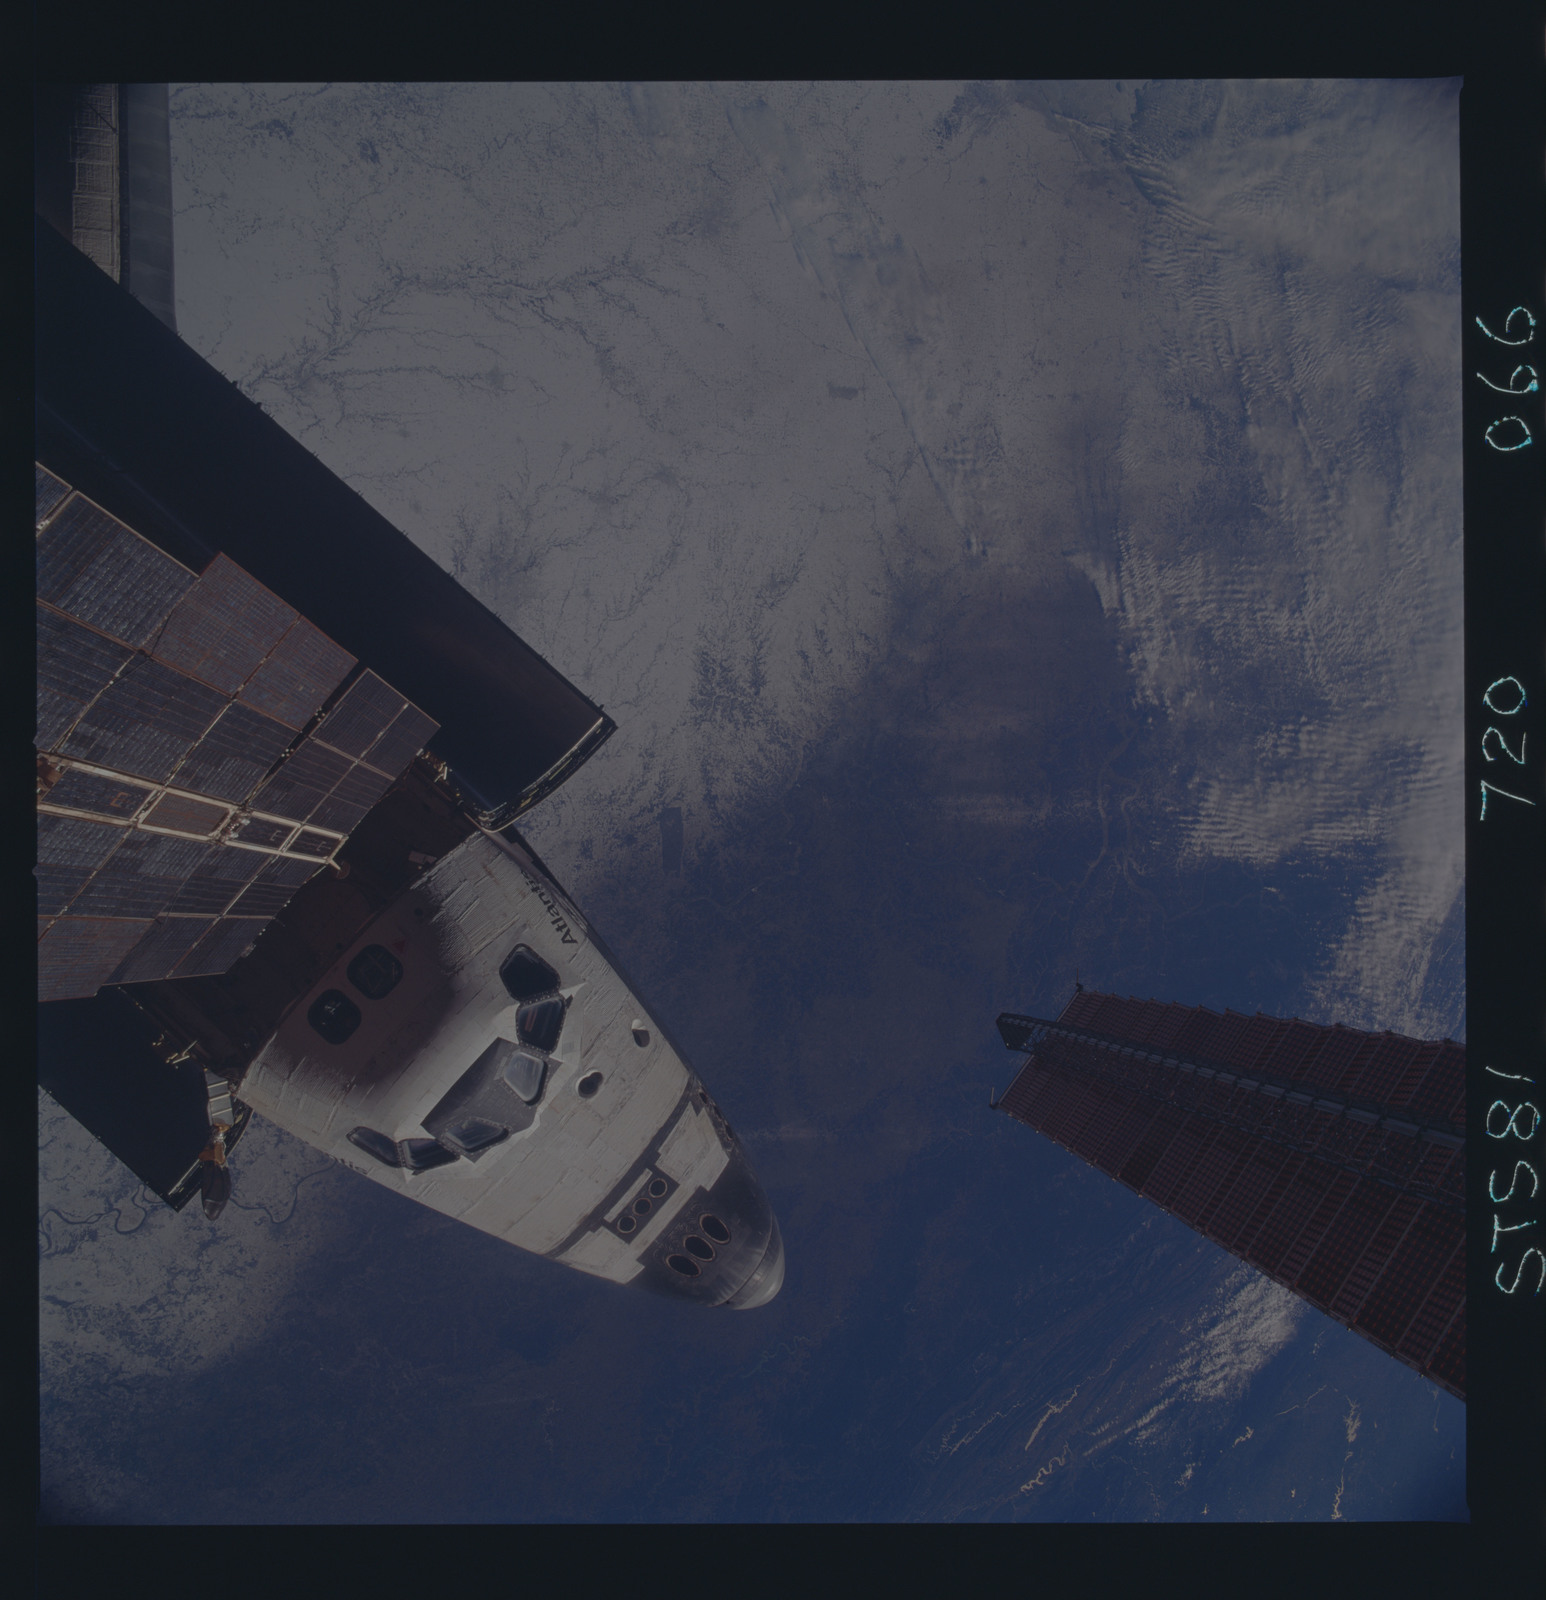 STS081-720-066 - STS-081 - View of the nose of the orbiter taken from the Mir space station